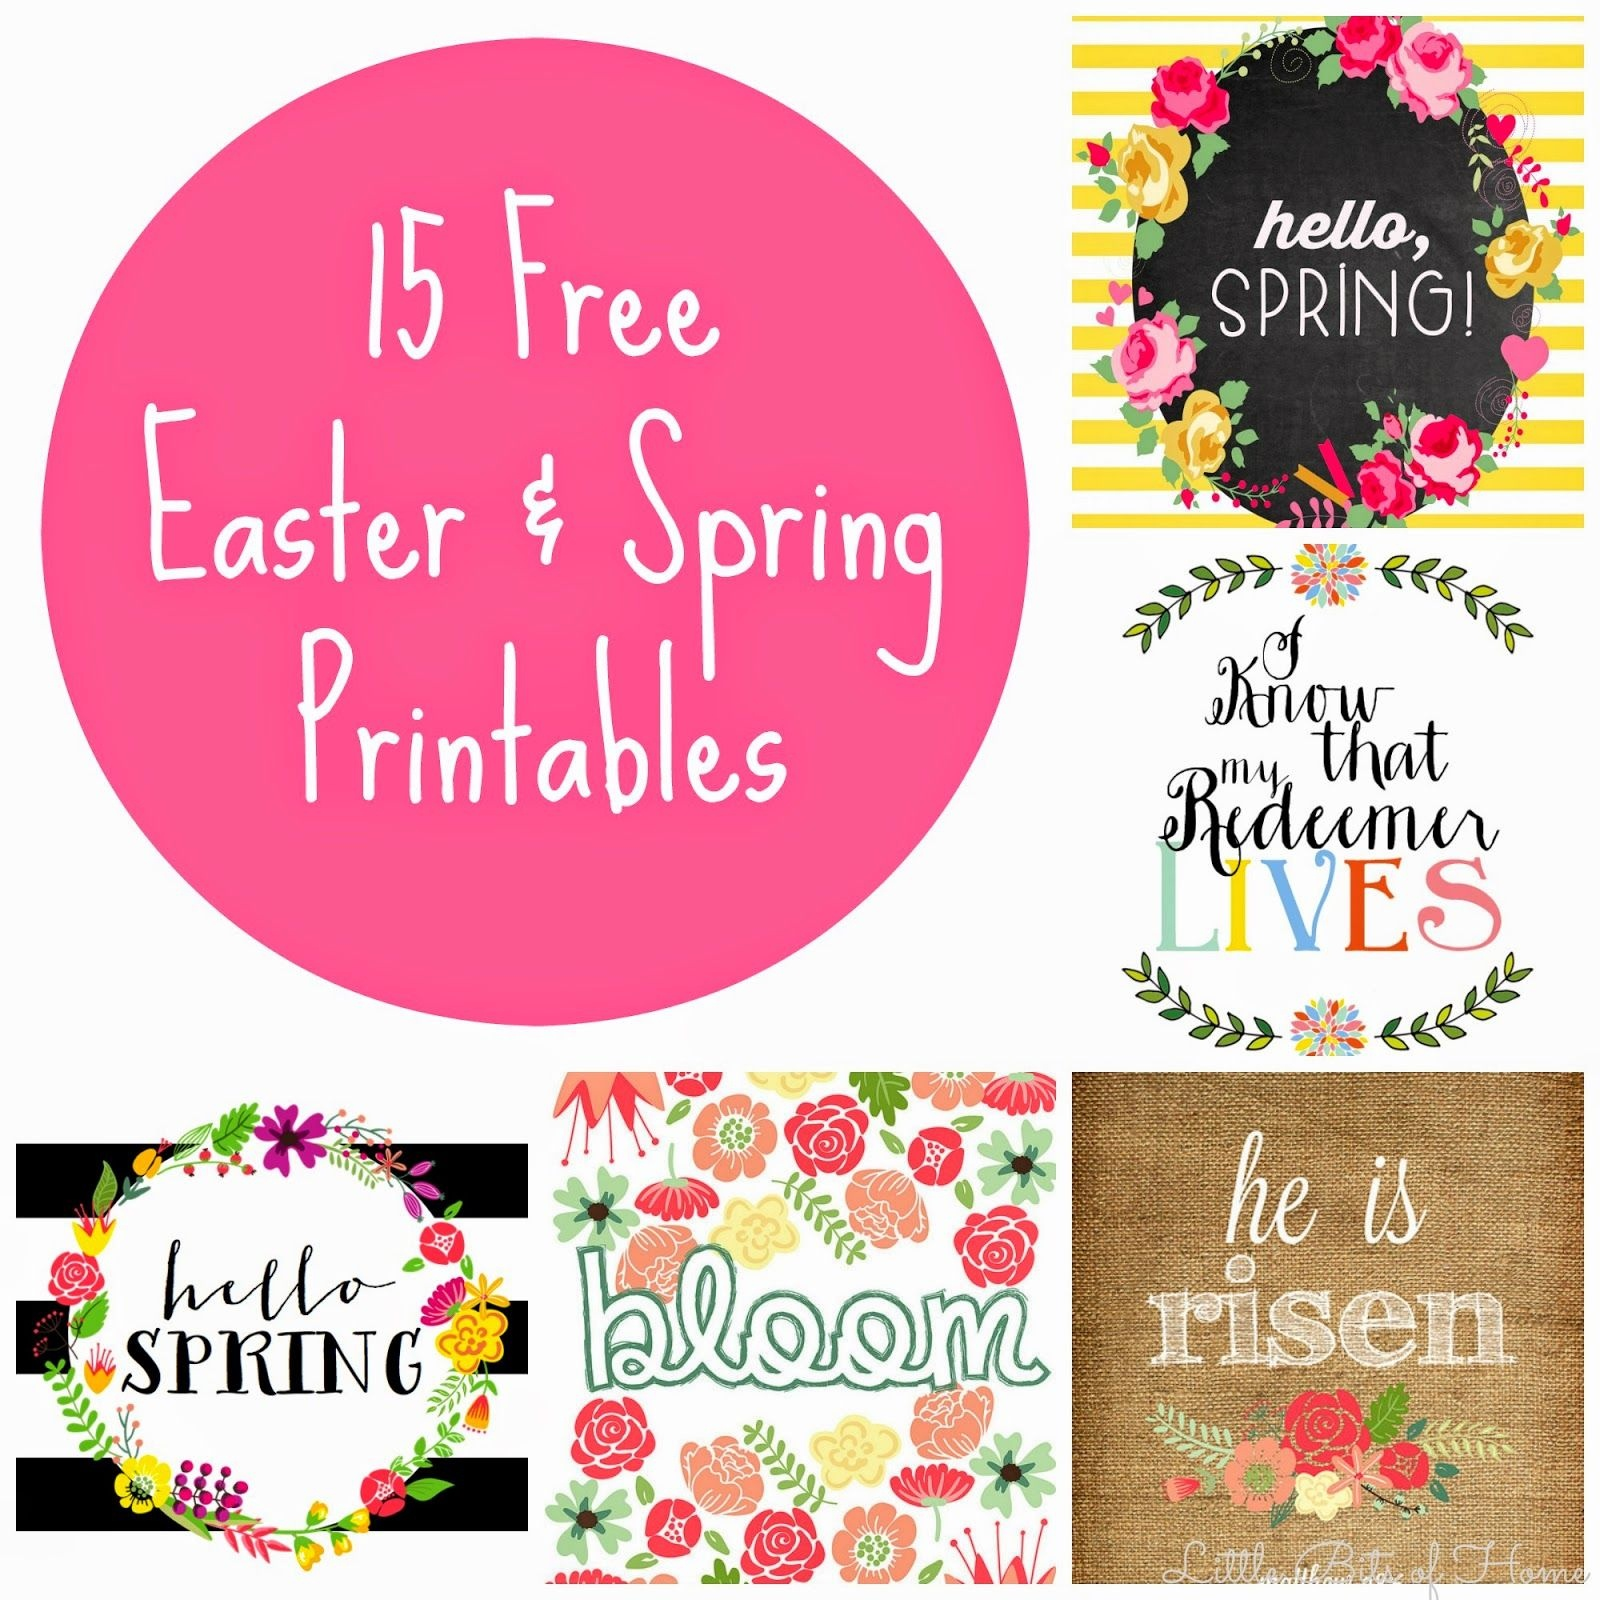 15 Free Spring And Easter Printables | Artsy Stuff | Easter - Free Printable Spring Decorations